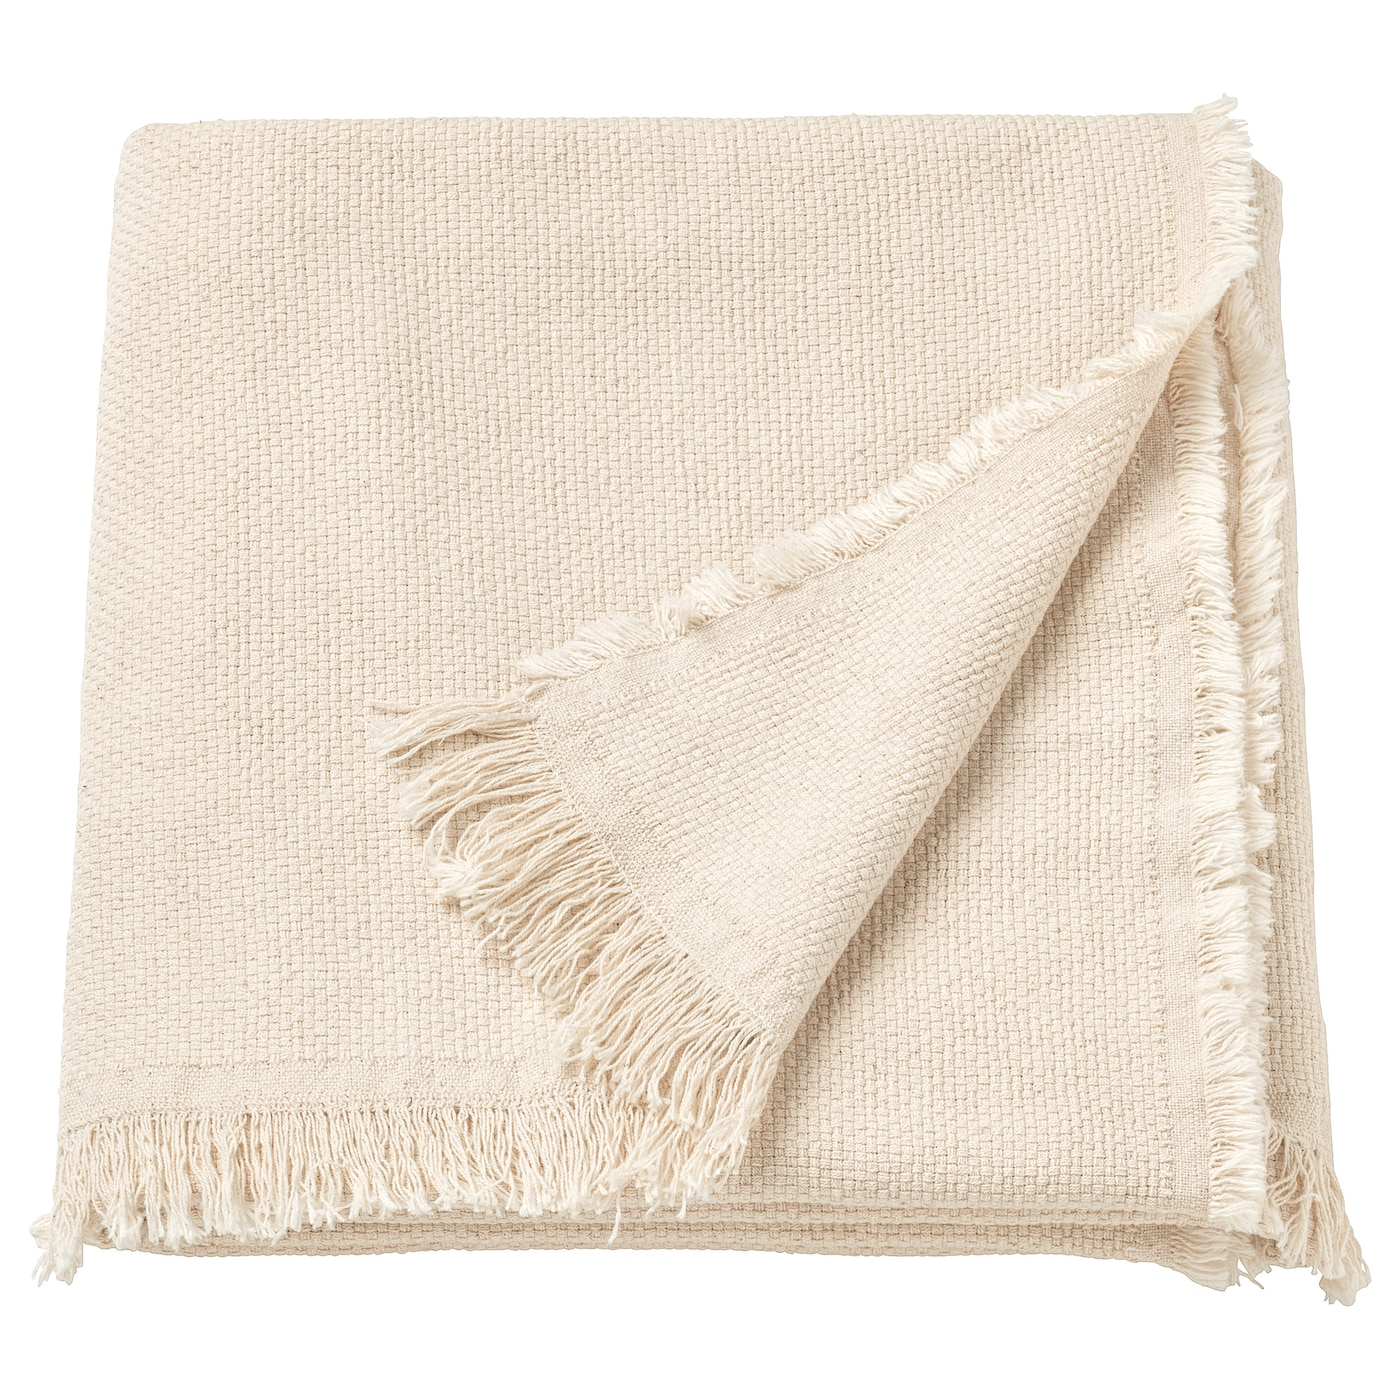 IKEA ODDRUN throw Cotton is a soft and easy-care natural material that you can machine wash.